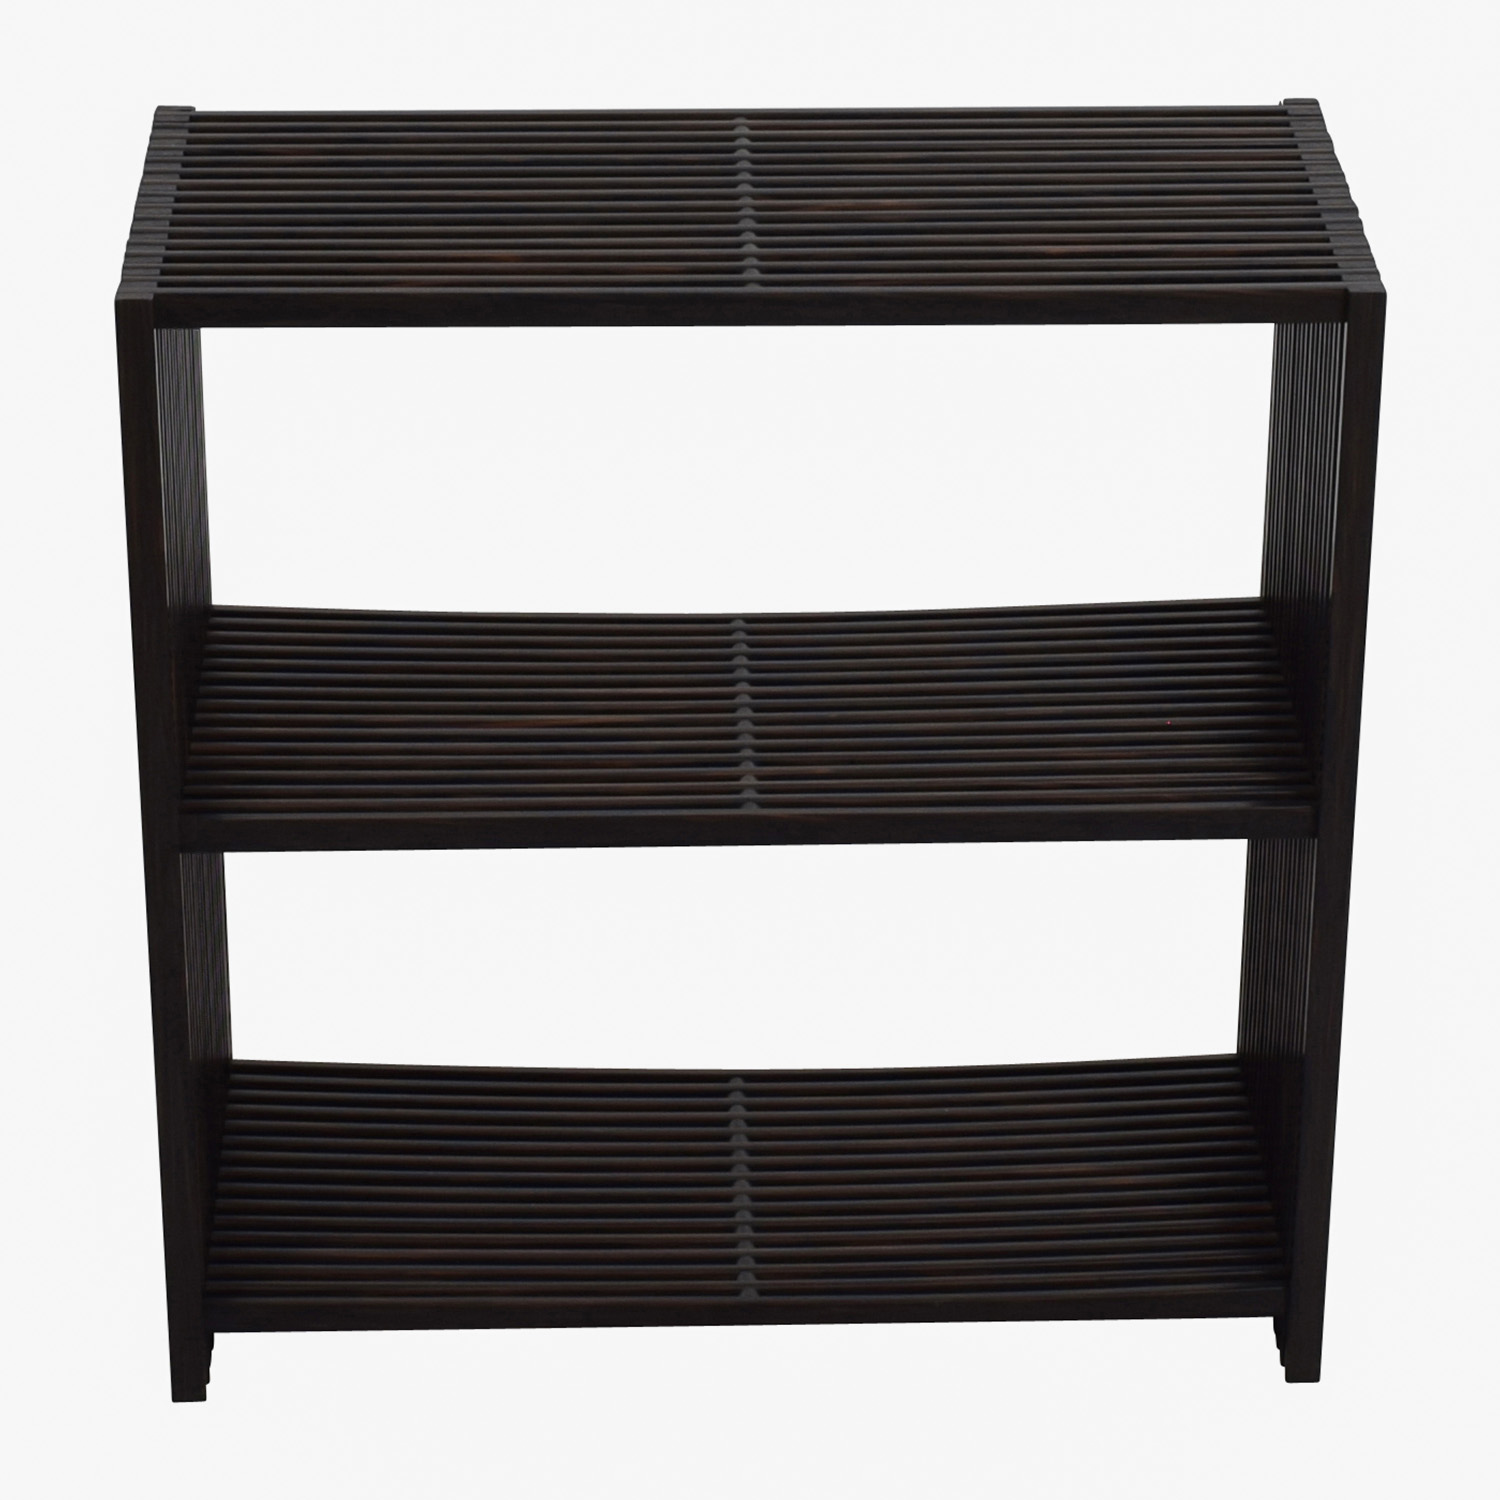 Seville Classics Seville Classics 3-Tier Two-Tone Folding Wide Rectangle Bookcase Shelf for sale